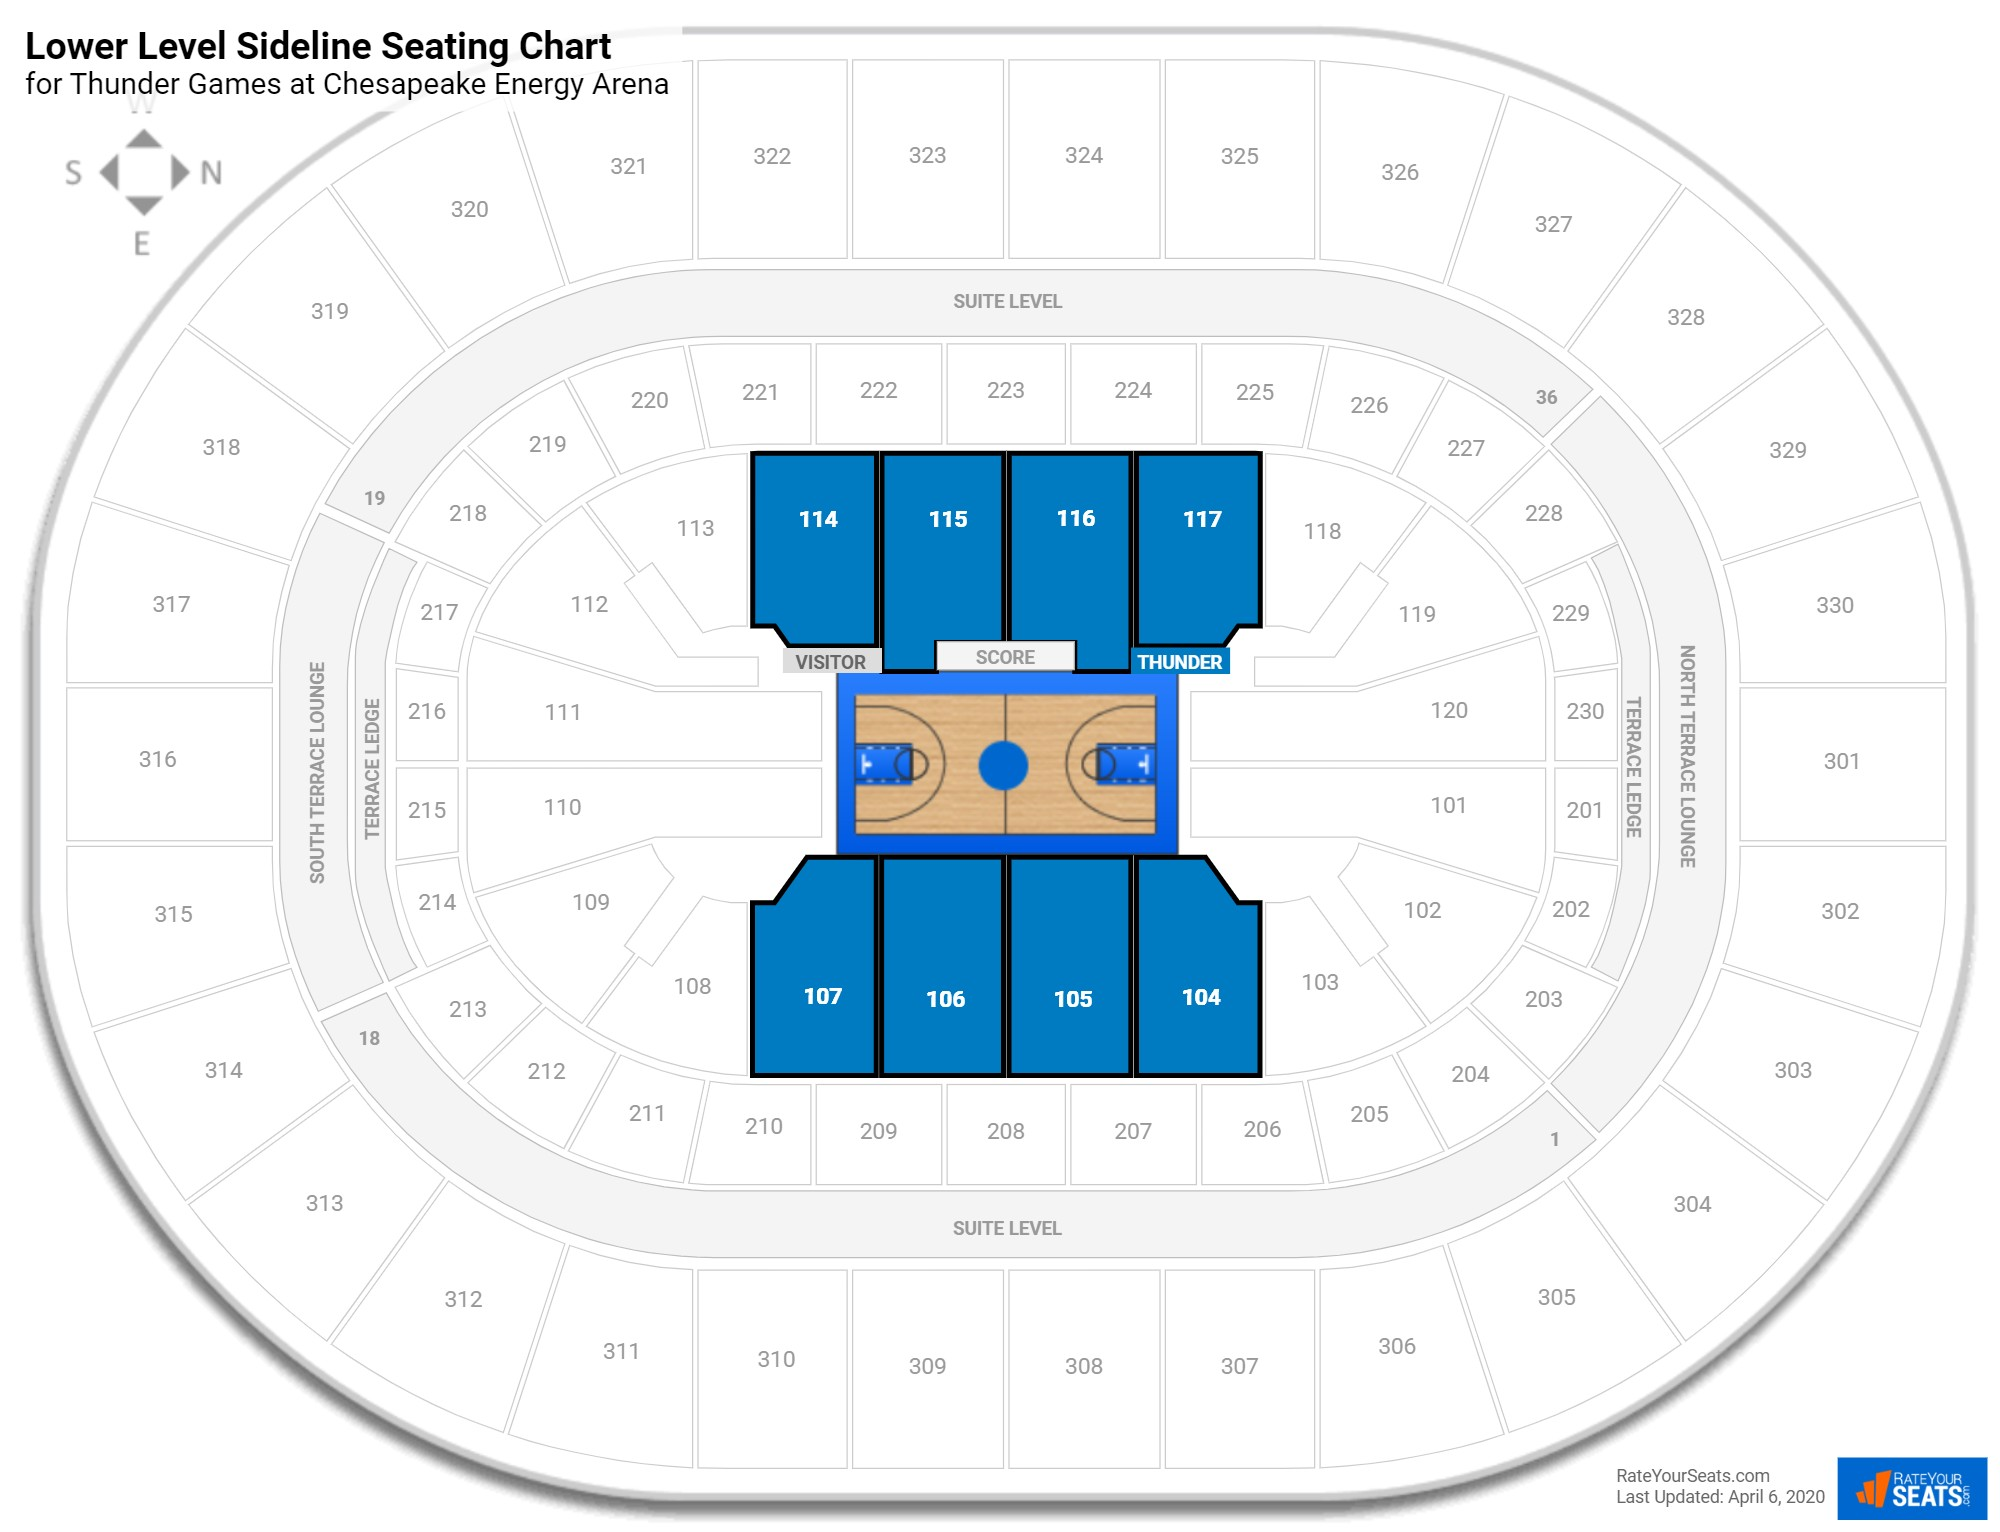 Chesapeake Energy Arena Lower Level Sideline seating chart